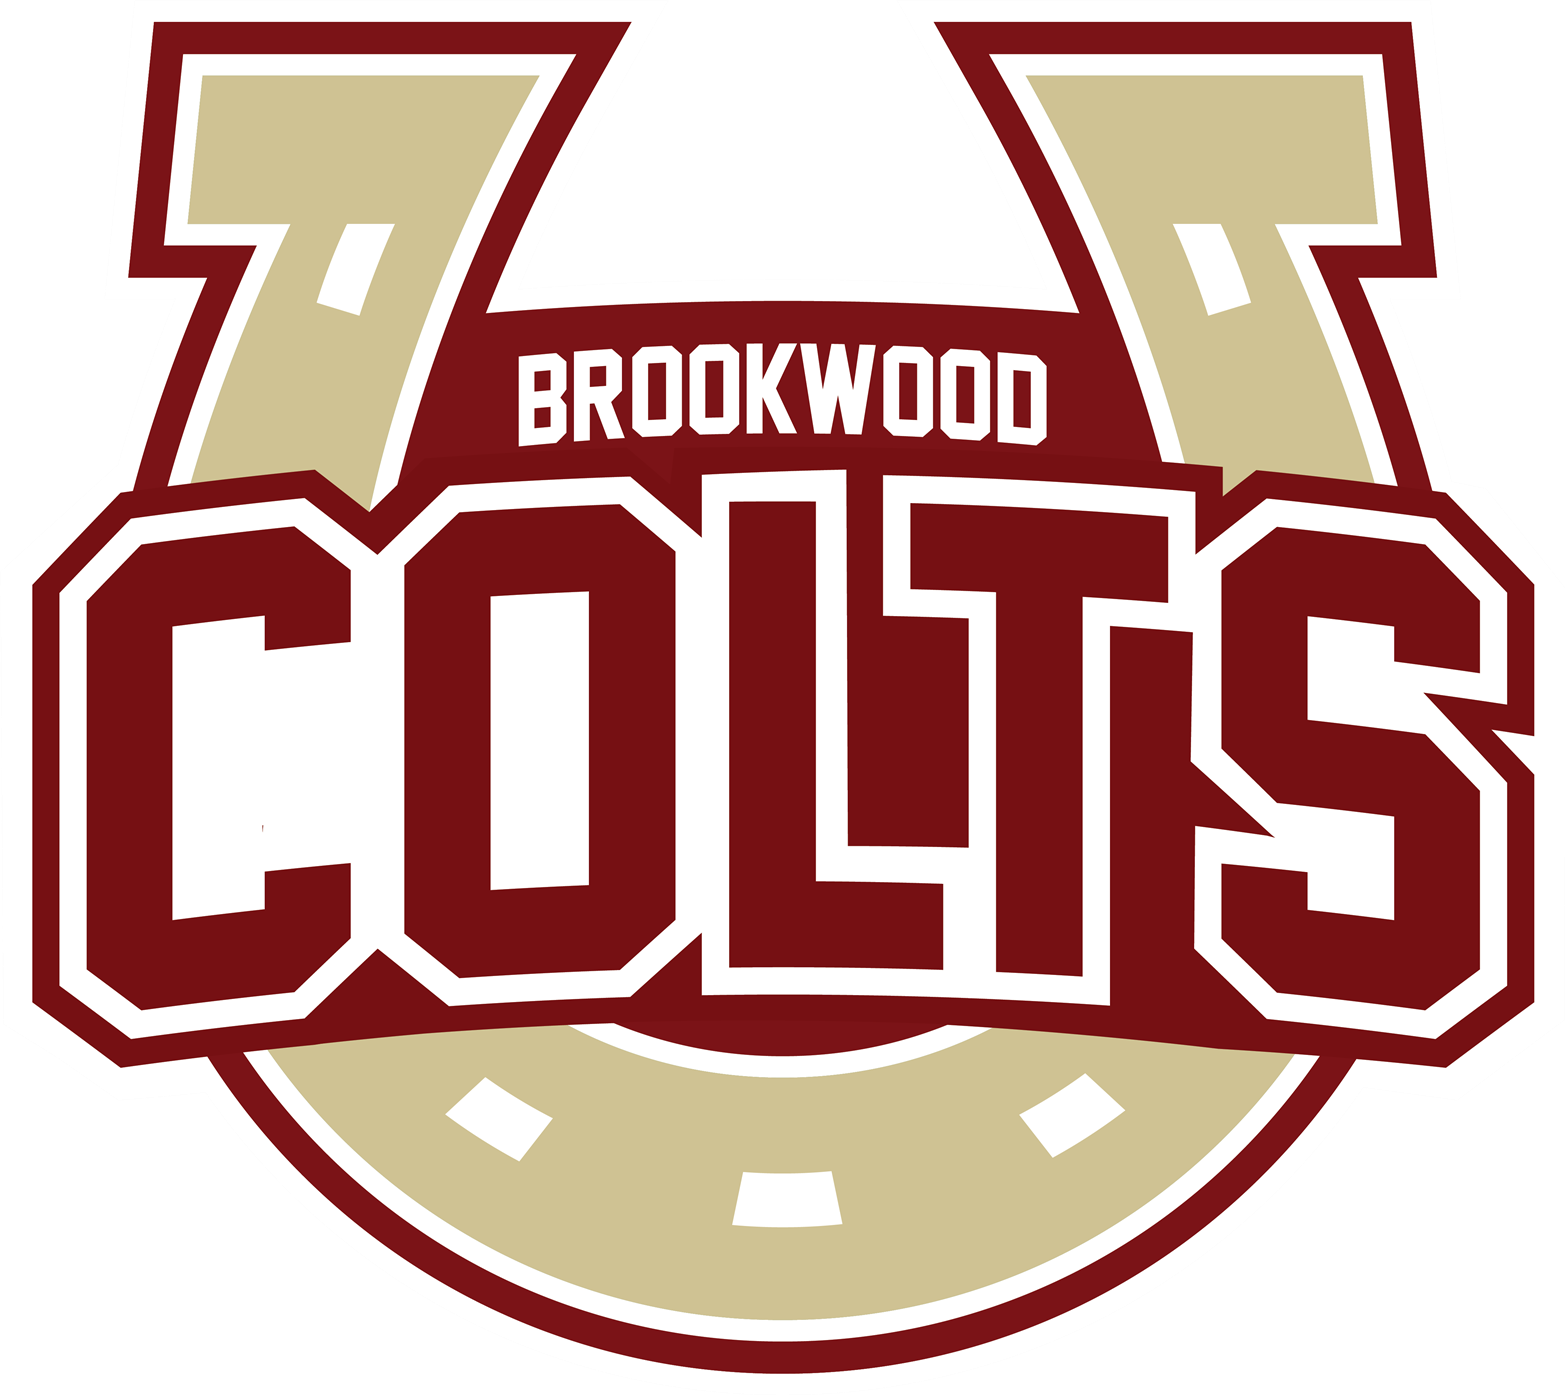 Brookwood Colts horse shoe